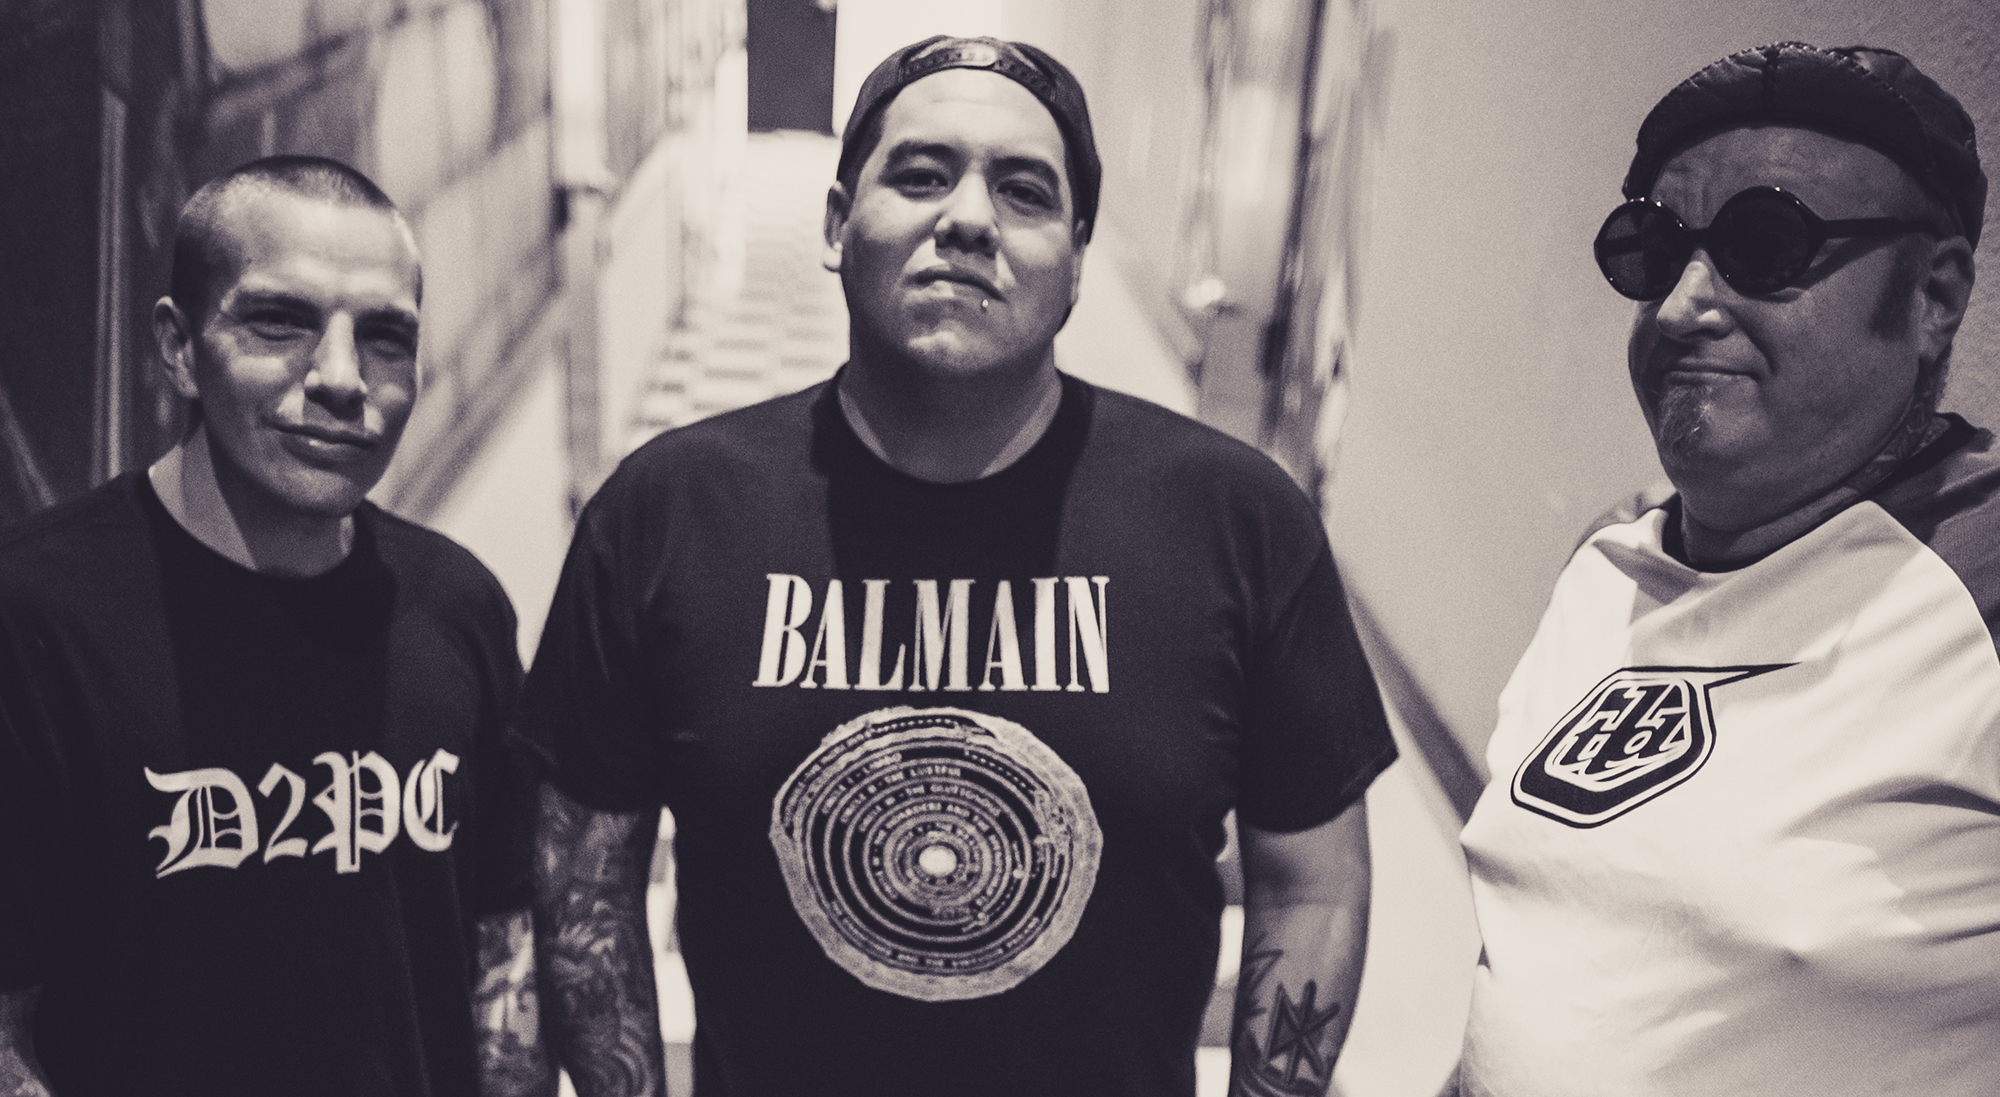 Sublime with Rome 単独公演が決定!